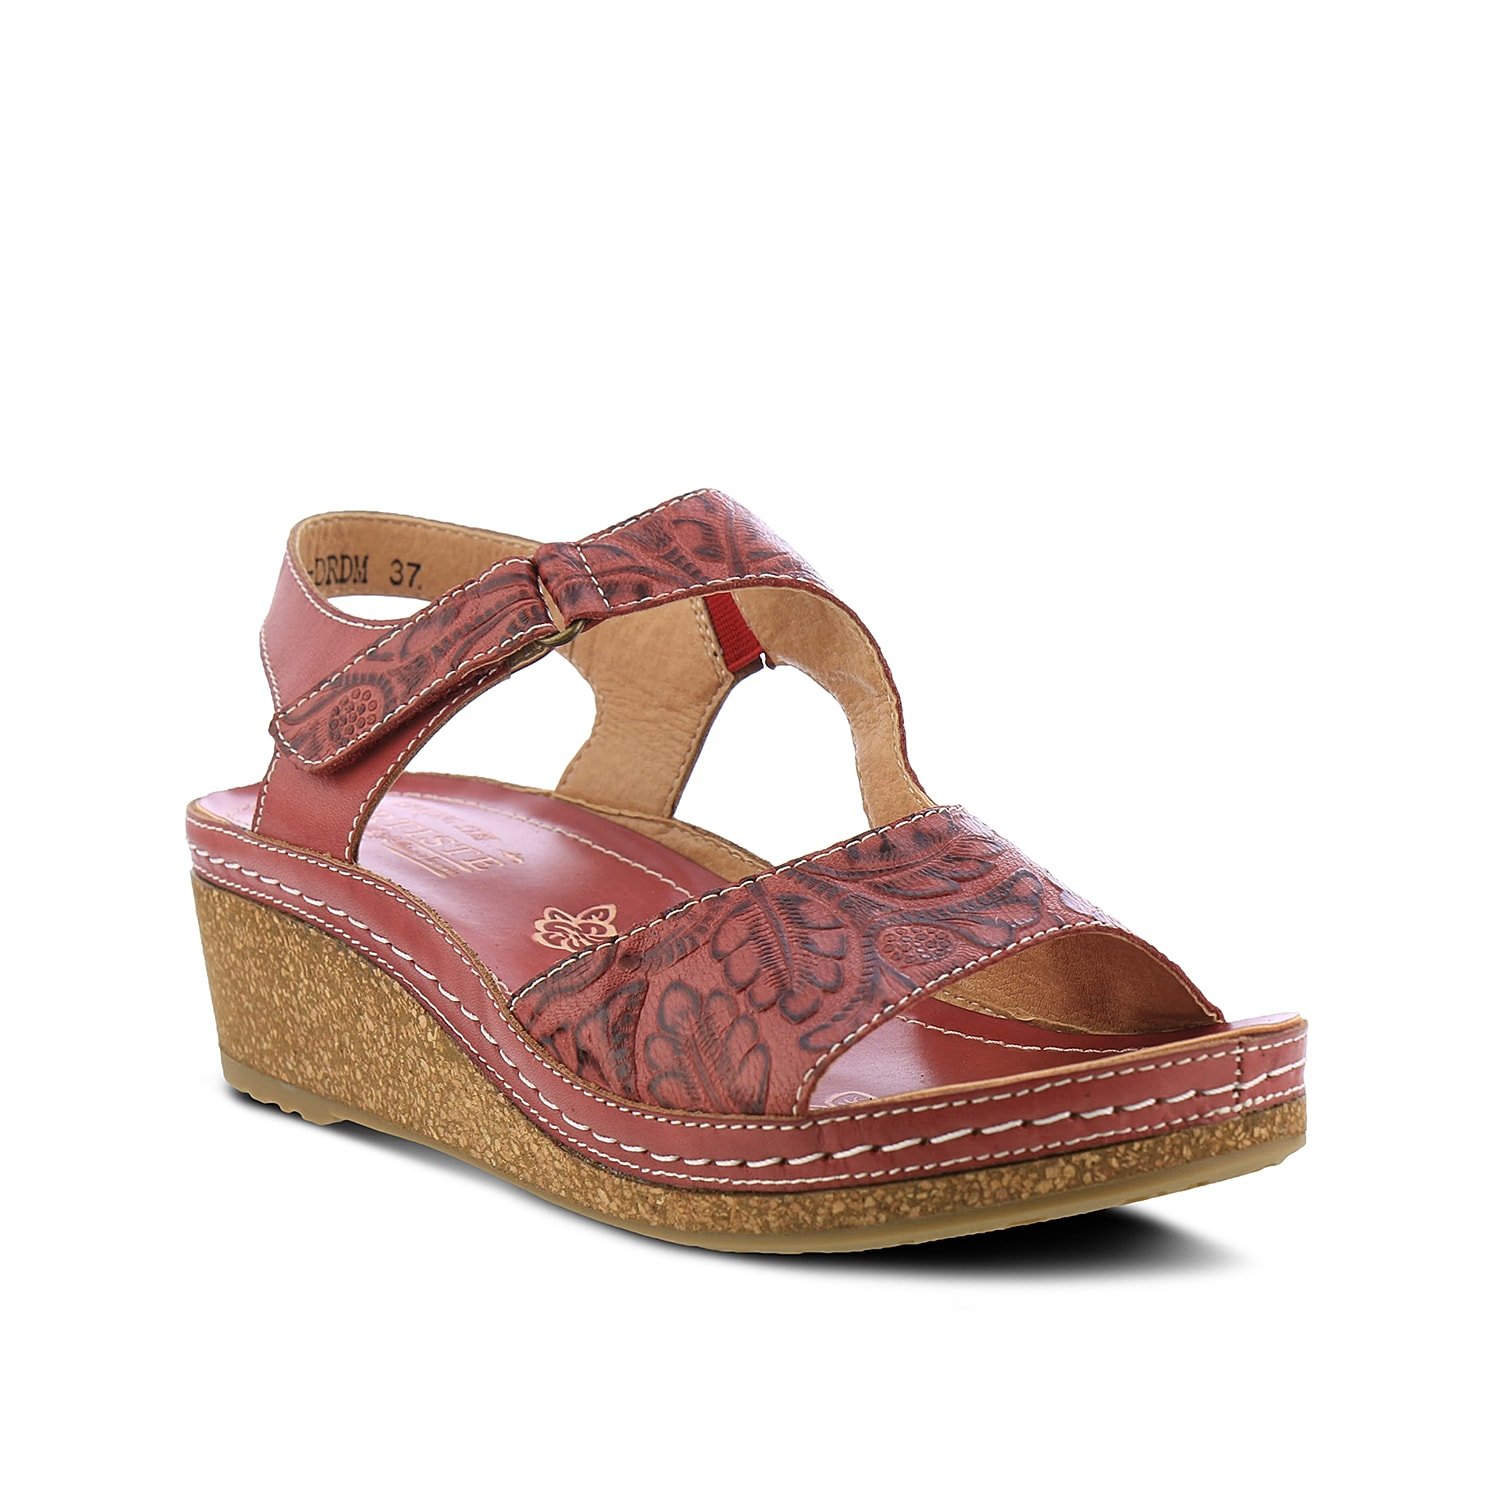 Exquisite details and engaging comfort is what makes the L\\\'Artiste by Spring Step Zeta wedge sandal a unique pick. The French-inspired wedge sandal boasts of gorgeous hand-painted details, floral-embossed pattern, coordinating stitching details- all supported with a cork-infused wedge heel.